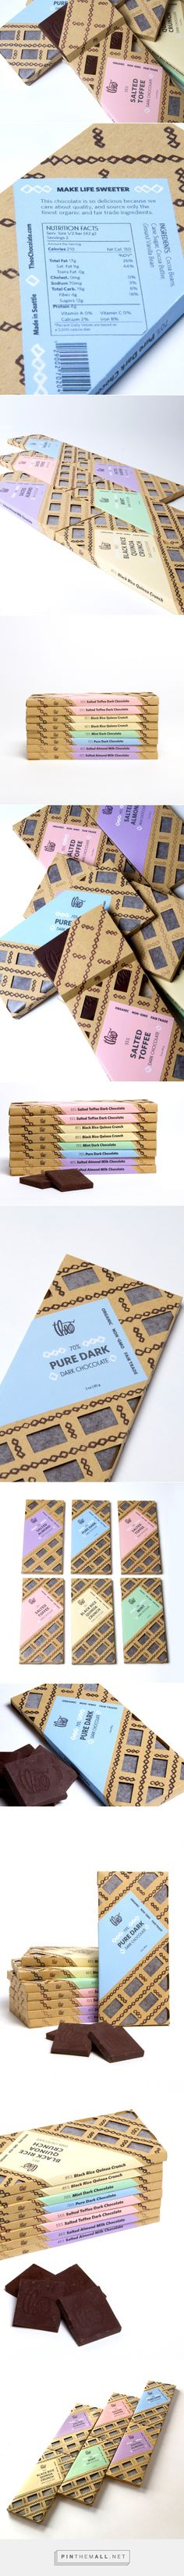 Theo Chocolate (Student Project) - Packaging of the World - Creative Package Design Gallery - http://www.packagingoftheworld.com/2017/01/theo-chocolate-student-project.html